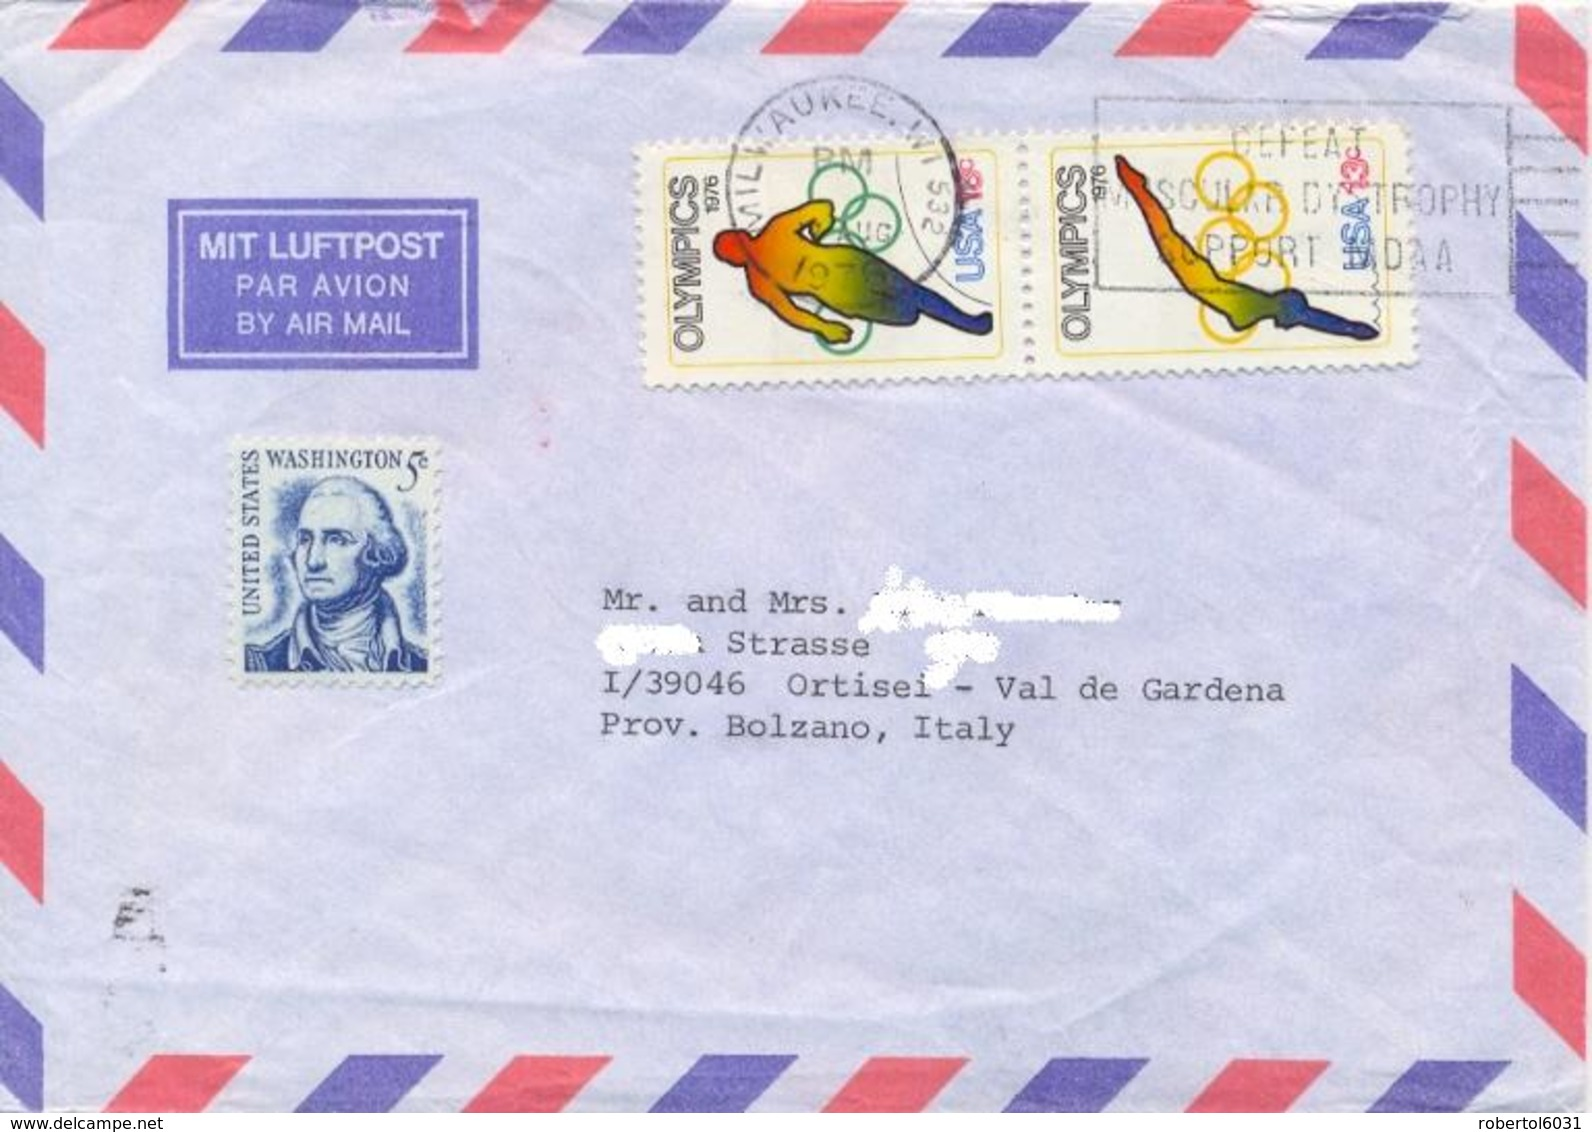 USA 1976 Cover To Italy With 2 X 13 C. Montreal Olympic Games + 1 C. Washington - Estate 1976: Montreal